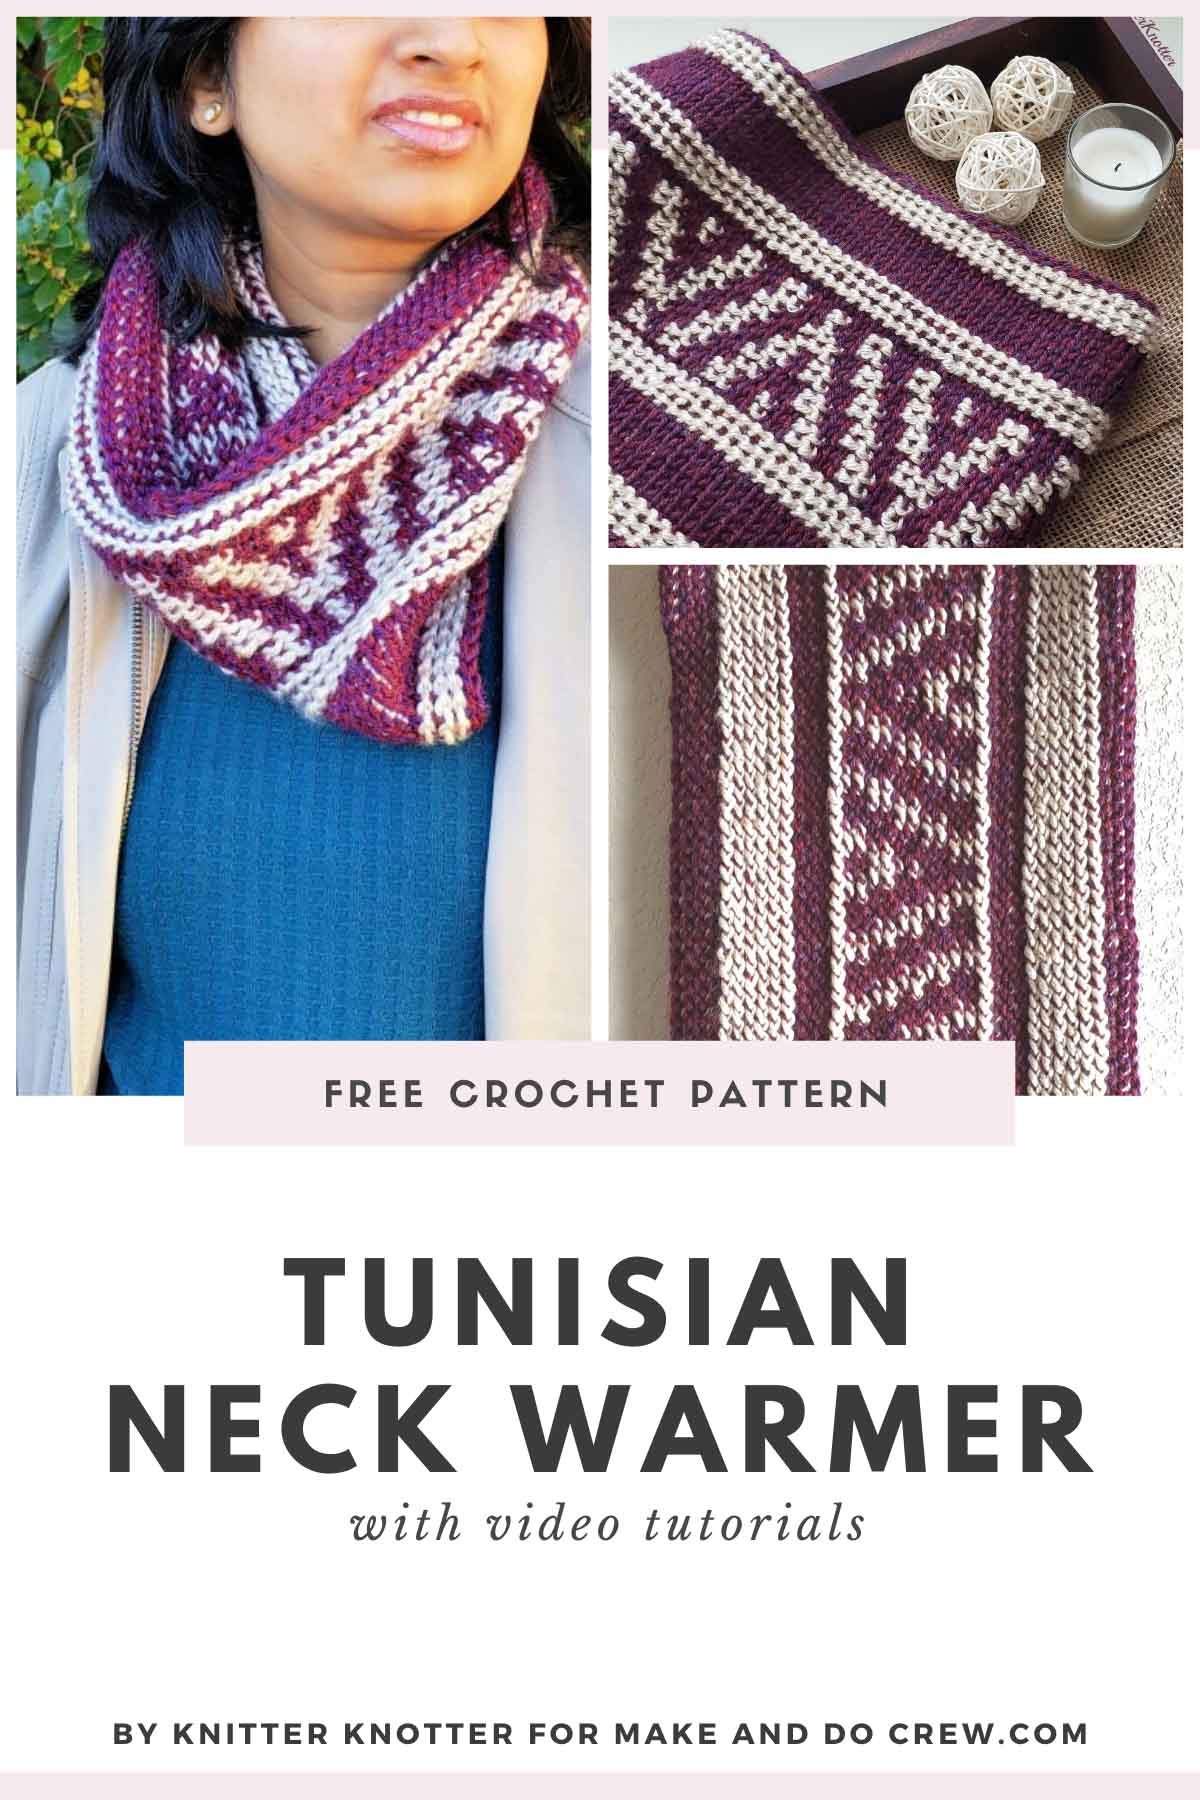 Free beginner-friendly crochet pattern for a Tunisian crochet neck warmer. Made with Lion Brand Heartland yarn. Video tutorials included.